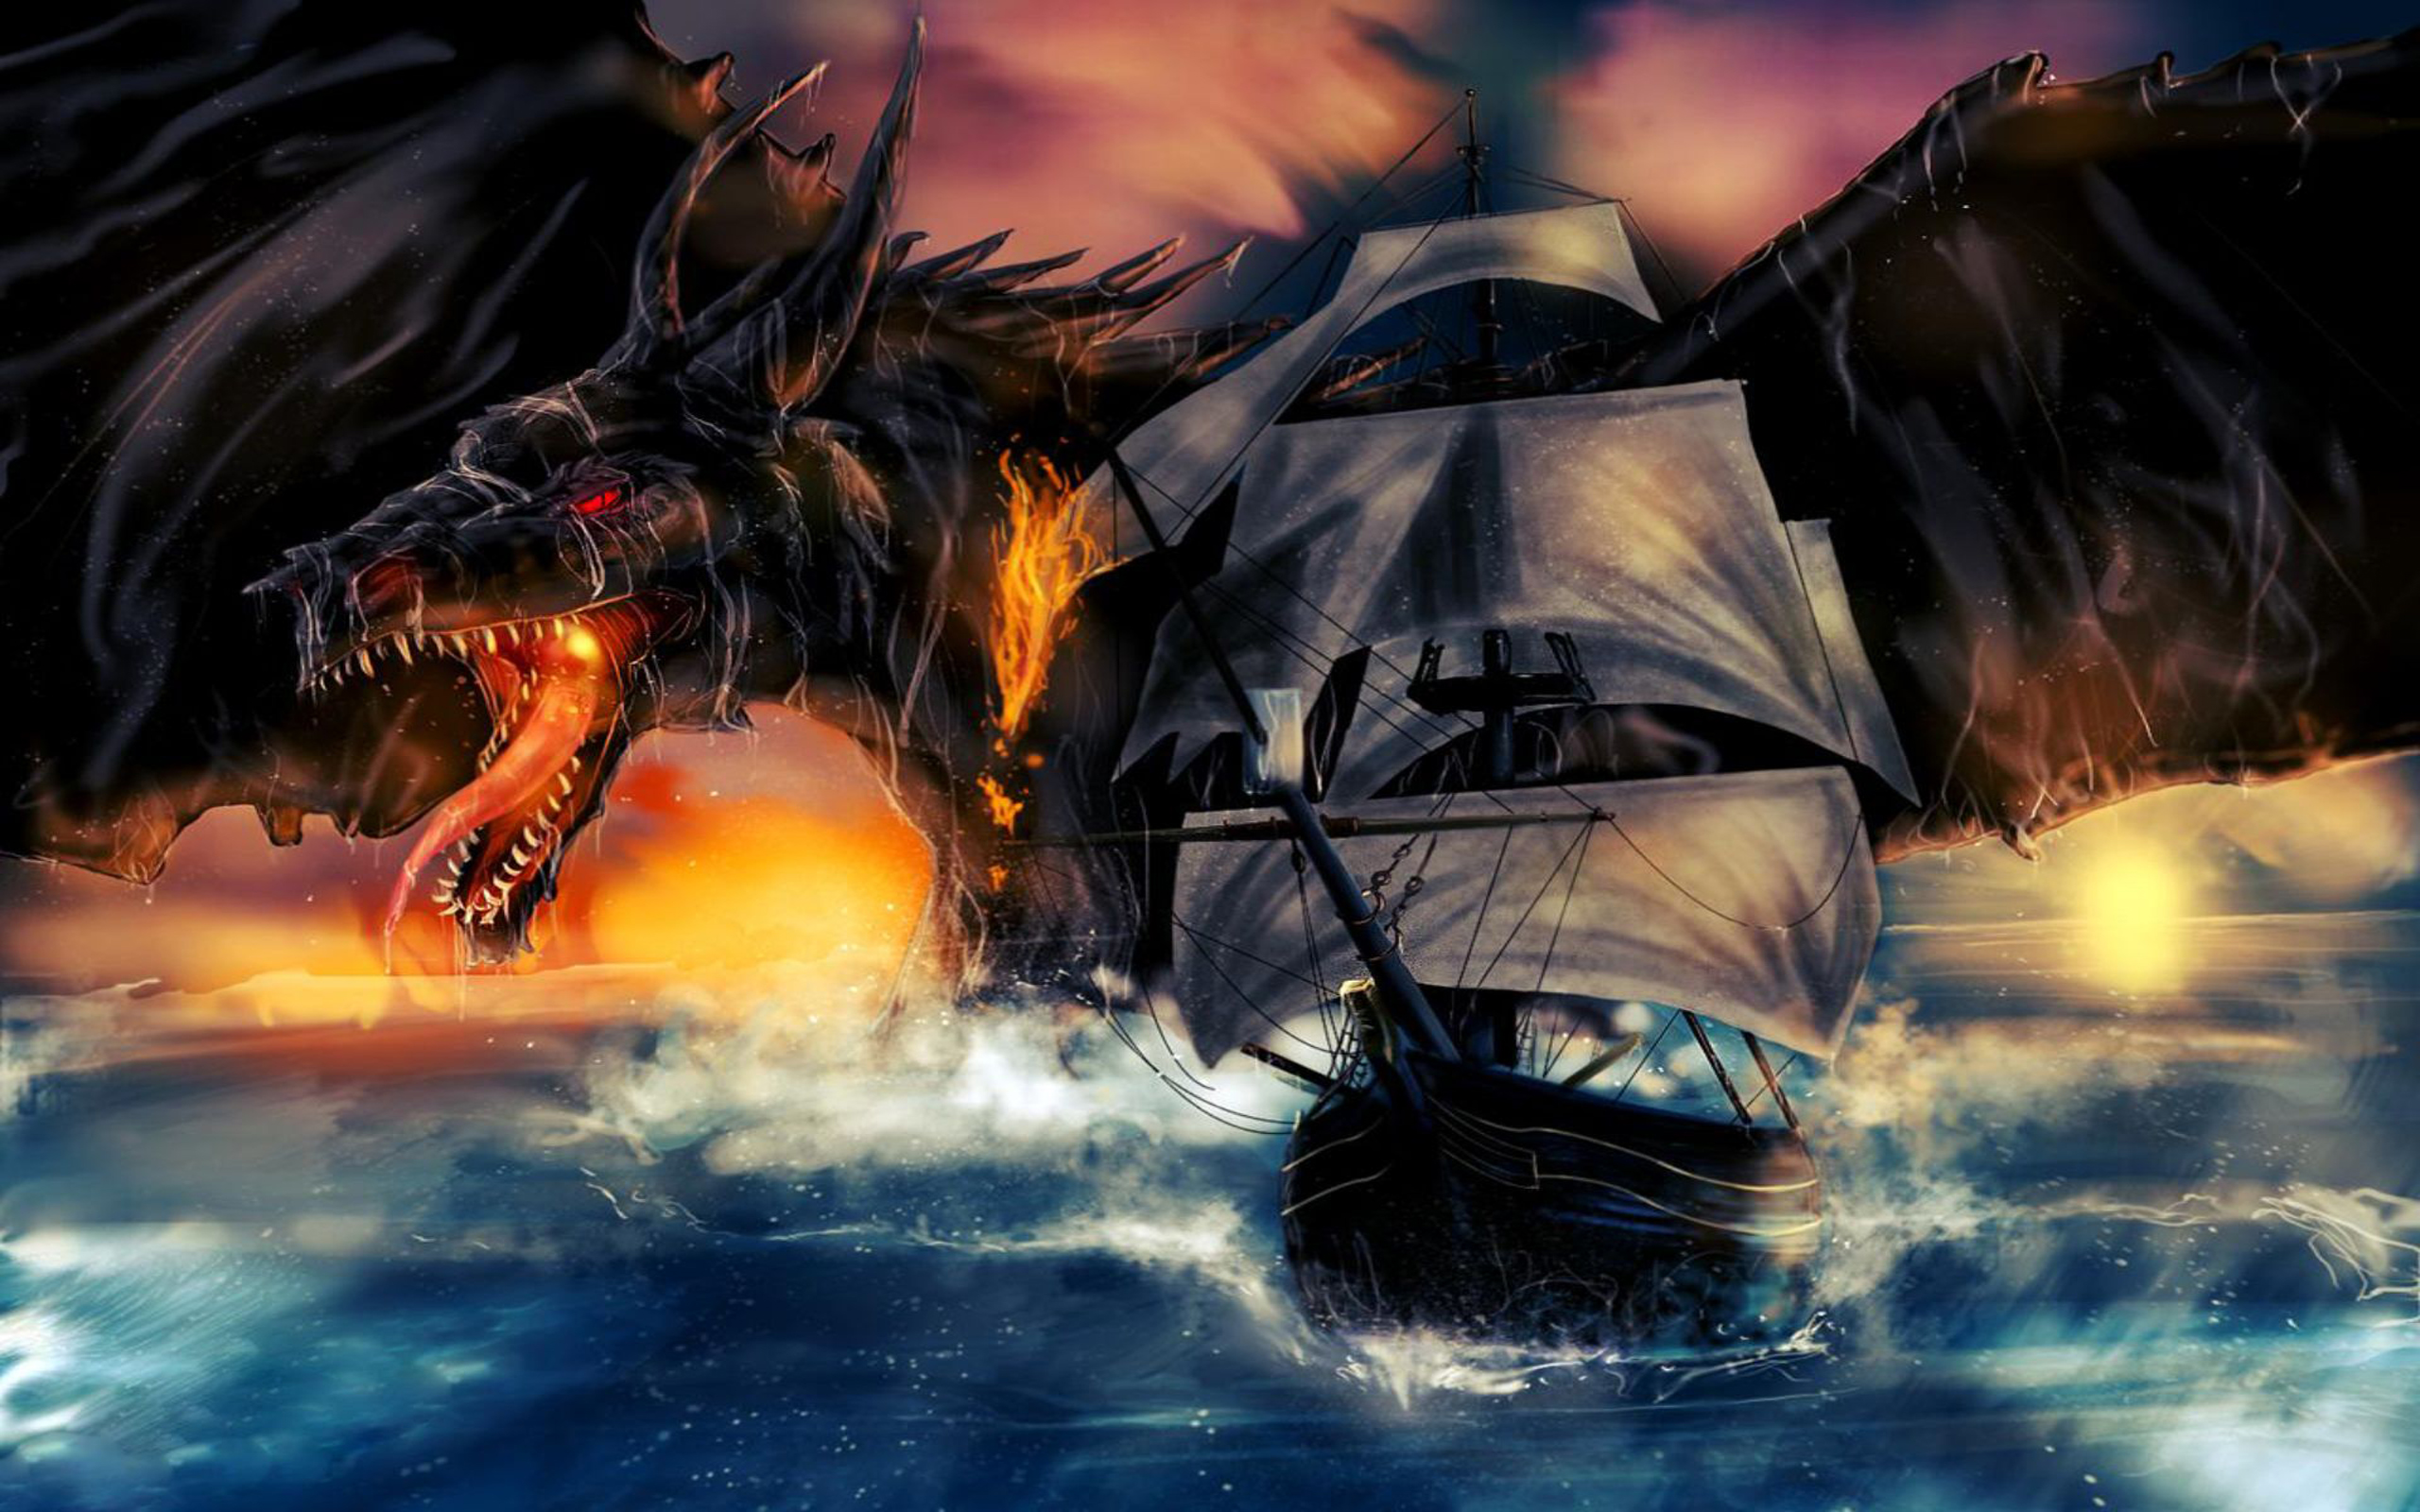 Ship Black Dragon